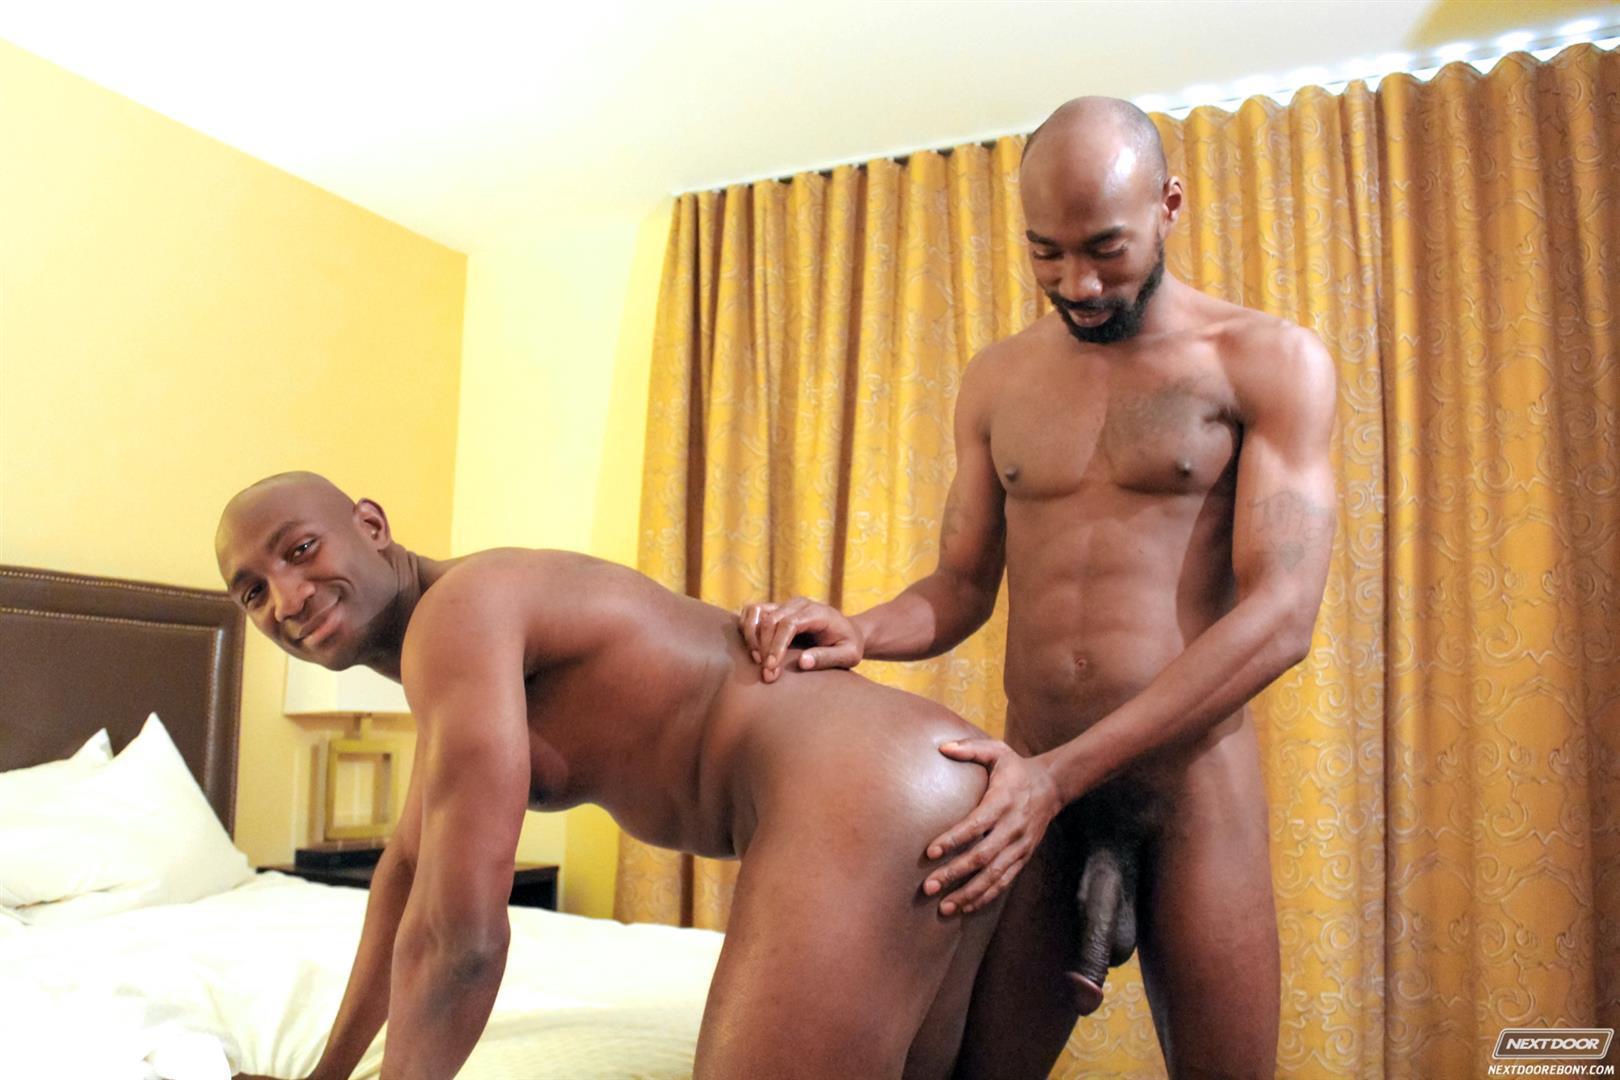 Next Door Ebony Astengo and PD Fox Big Black Cocks Fucking Amateur Gay Porn 09 Two Hung Black Guys Having Anonymous Gay Sex In A Hotel Room